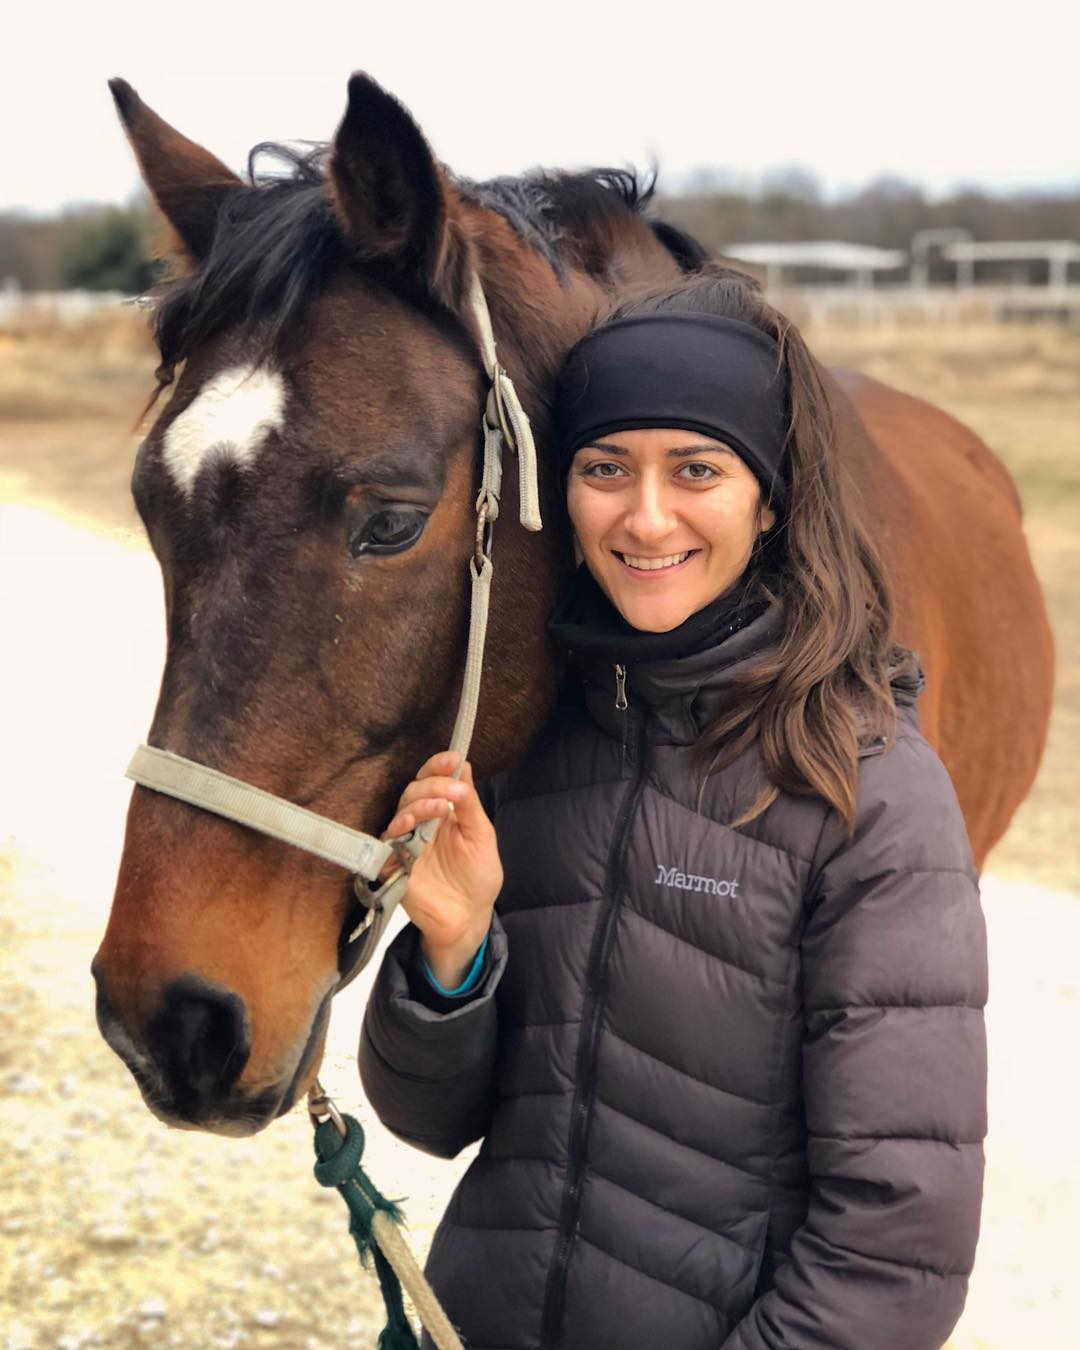 Hi! I'm @DrNatashaF — an AVCA certified horse, hound and human chiropractor. I live in Berkeley, CA and am so excited to publicly announce the birth of TAILS & TRAILS CHIROPRACTIC. I love love love working with dogs and horses. . At the end of 2017, I channeled my childhood dreams into hard work and completed my AMERICAN VETERINARY CHIROPRATIC CERTIFICATION! . After 7+ years of studying and practicing animal chiropractic and energy healing, I am officially adding canine and equine adjustments to my current human healing services! . Call, text or emails me to get some healing for your bff. (510) 946-7799 TailsAndTrailsChiro@gmail.com . . . #TailsandTrailschiro #AVCAcertified #animalchiropractor #spiritfriends #dreams #equine #horse #dog #animalchiropractic #equinechiropractic #caninechiropractic #dreamlife #ladyboss #livingthedream #hsp #pisces #empath #healer #helper #introvert #naturalmedicine #chiropractic #bioenergetics #dogsofinstagram #dogstagram #horsesofinstagram #homeopathy #DrNatashaFallahi #DrNatashaF #Berkeley